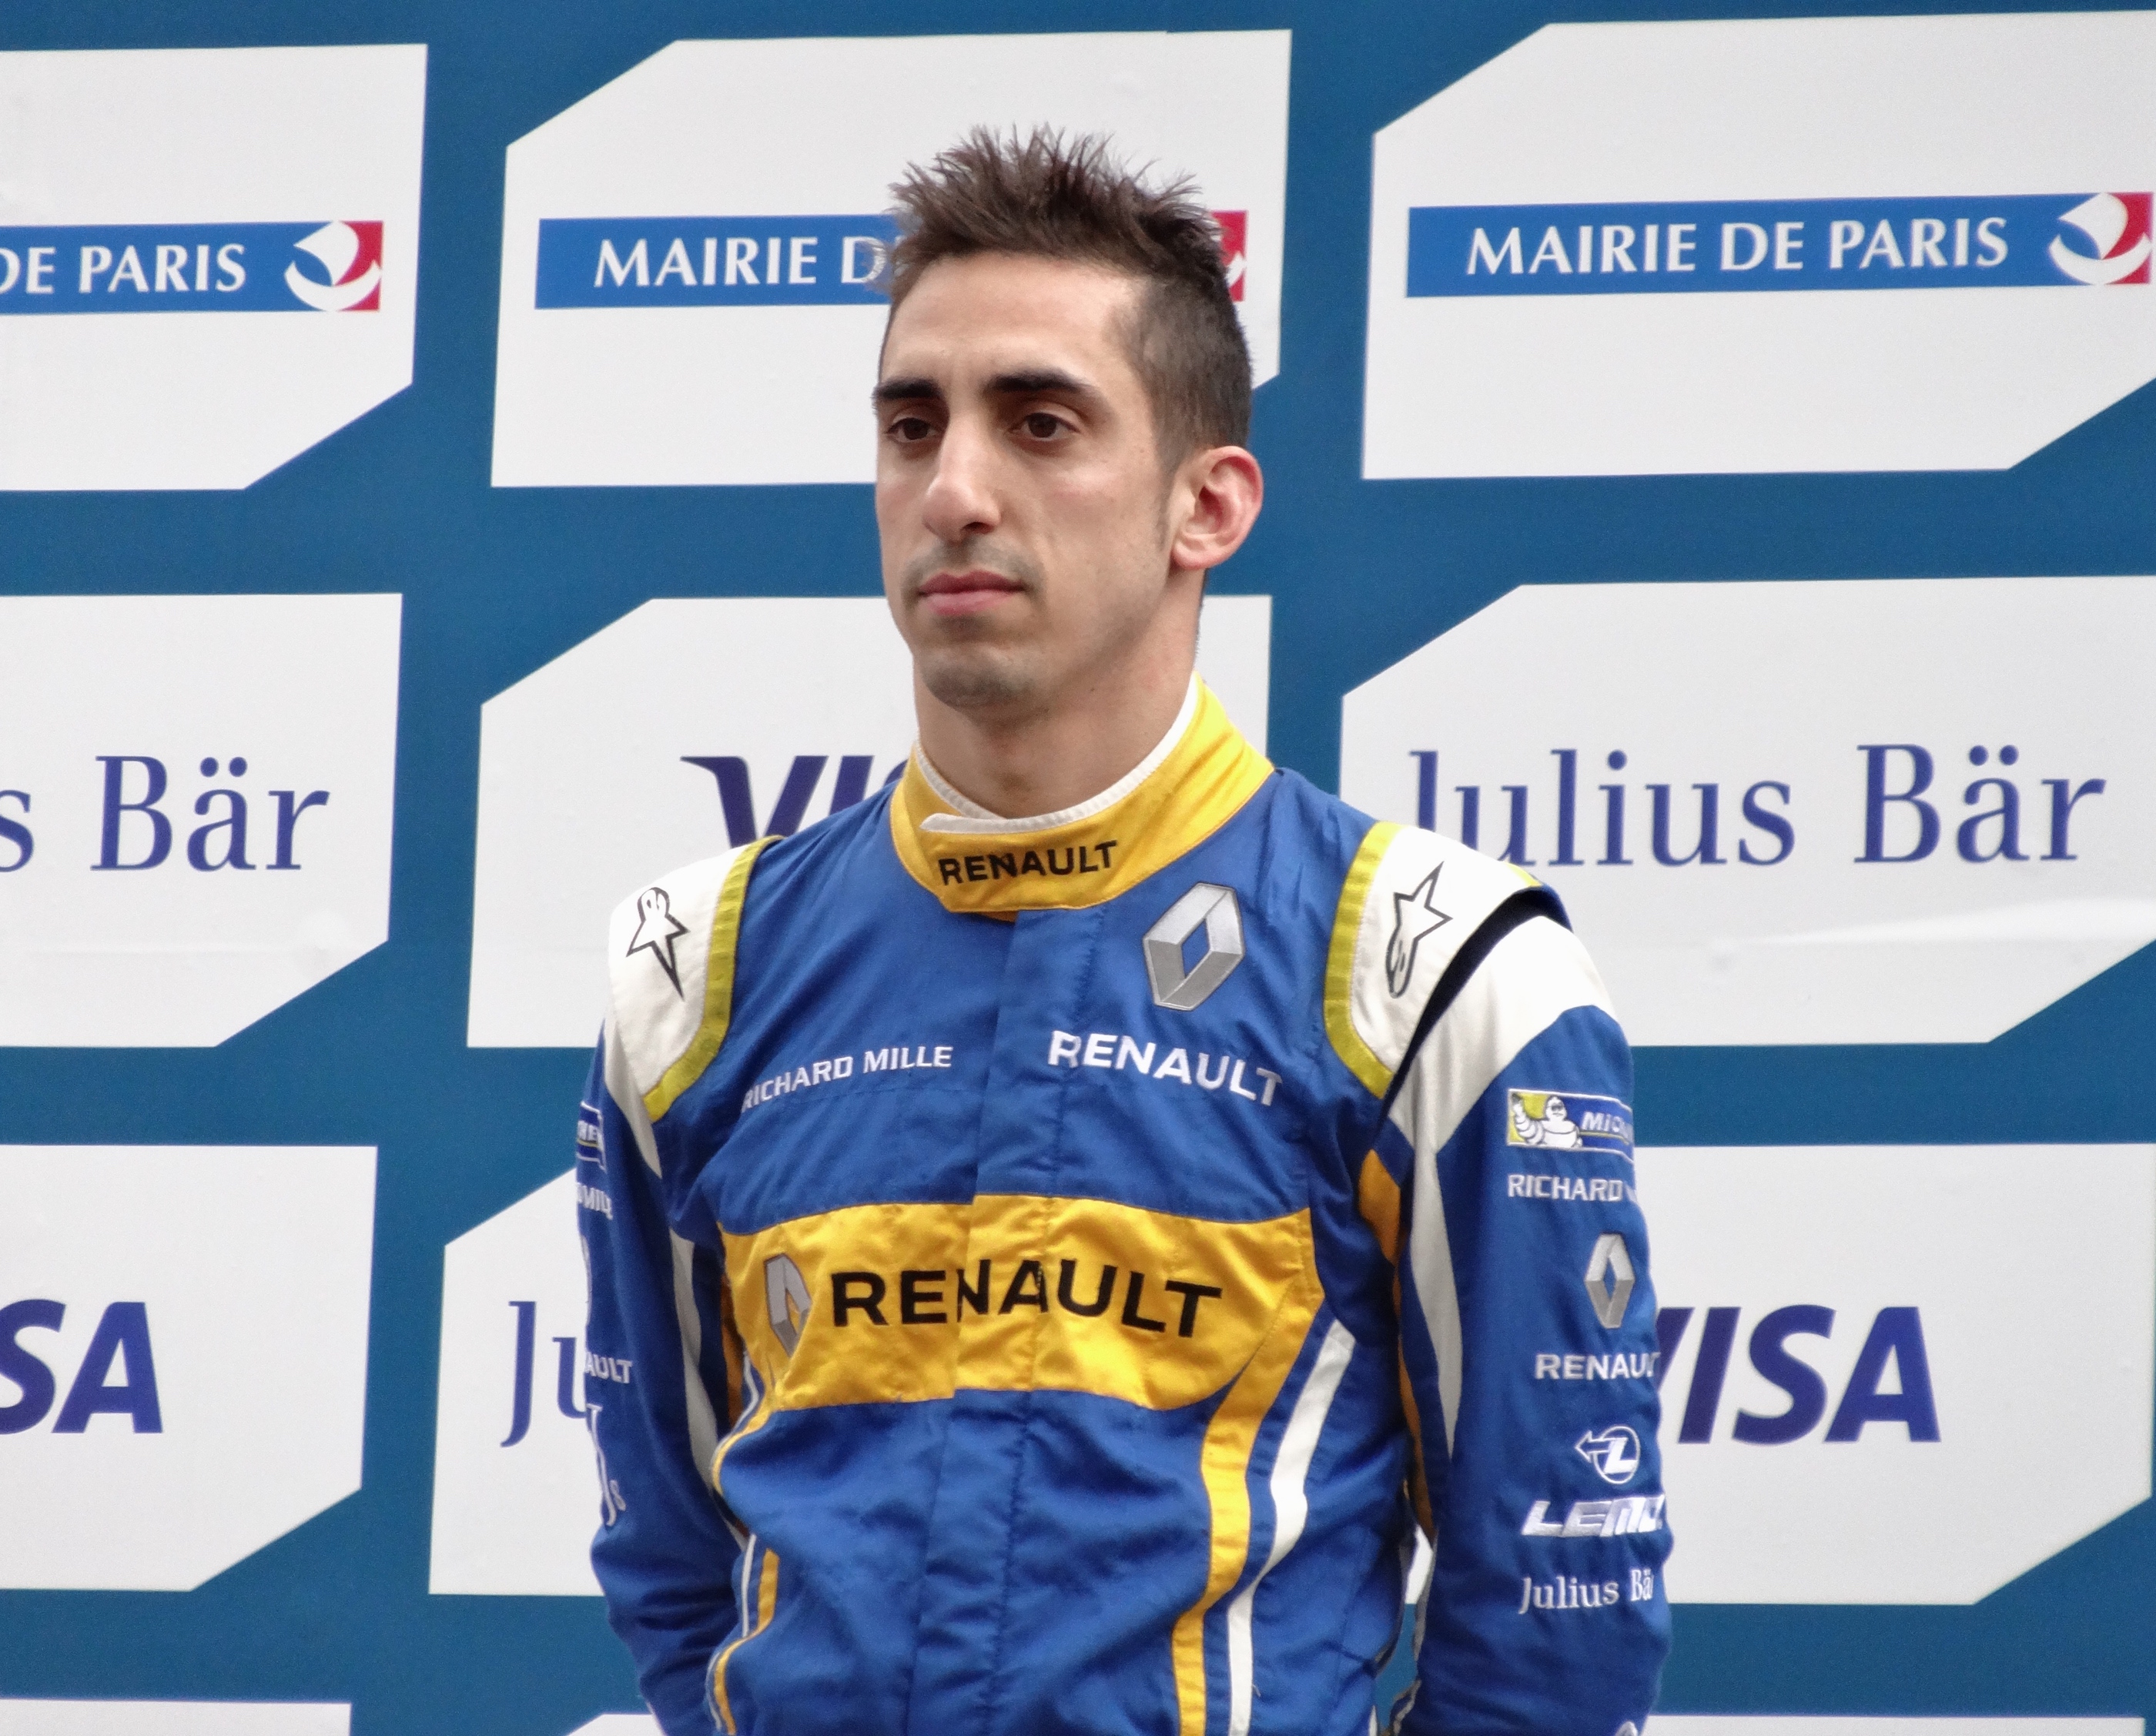 The 29-year old son of father (?) and mother(?) Sébastien Buemi in 2018 photo. Sébastien Buemi earned a  million dollar salary - leaving the net worth at 4 million in 2018